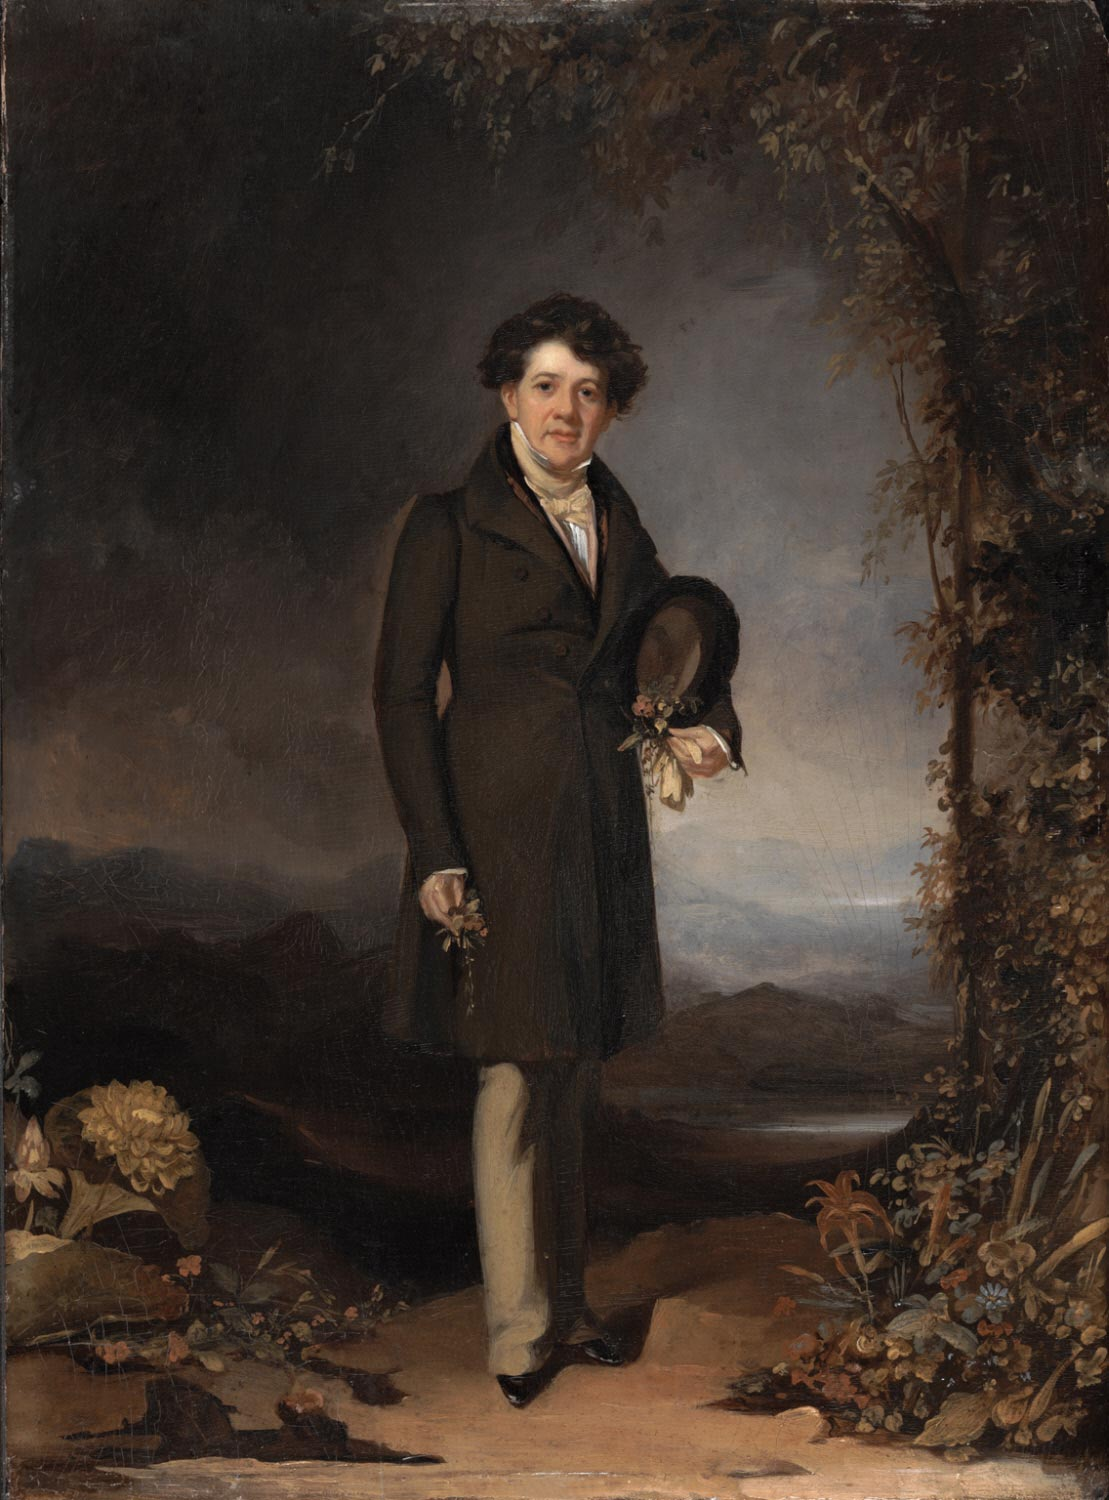 Portrait of Mr. William P. C. Barton, Professor of Botany, Physician, and Botanist